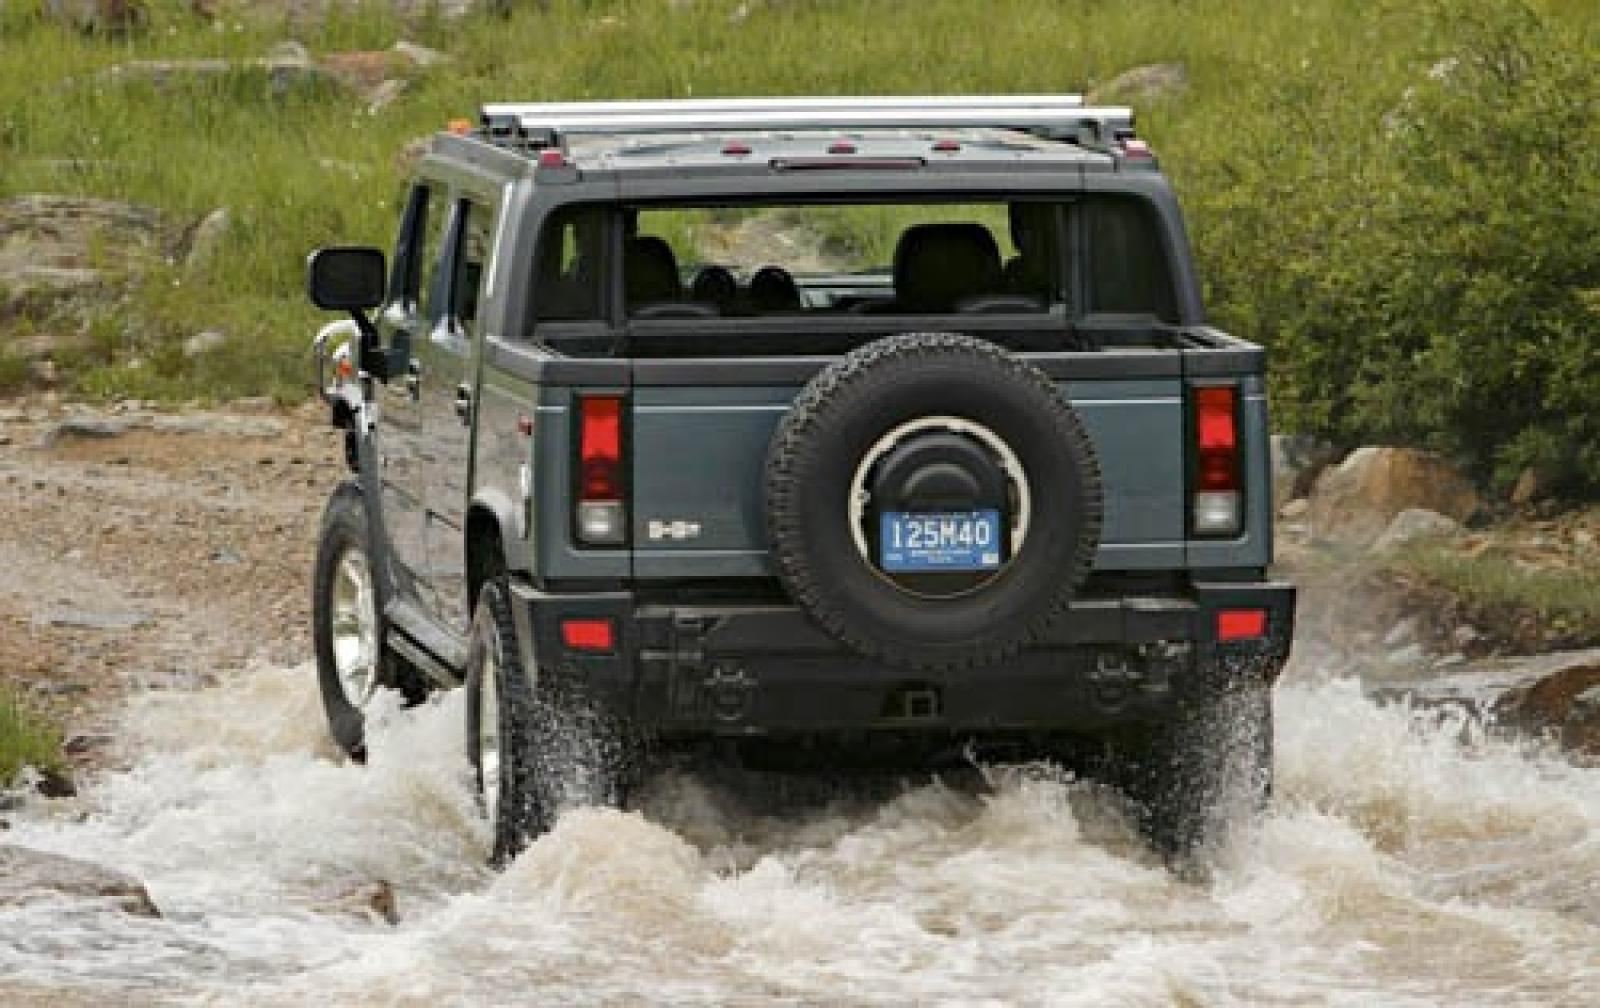 Service Manual 2006 Hummer H2 Sut Tank Removal Hummer H2 Sut At Marc Heitz Chevrolet Live